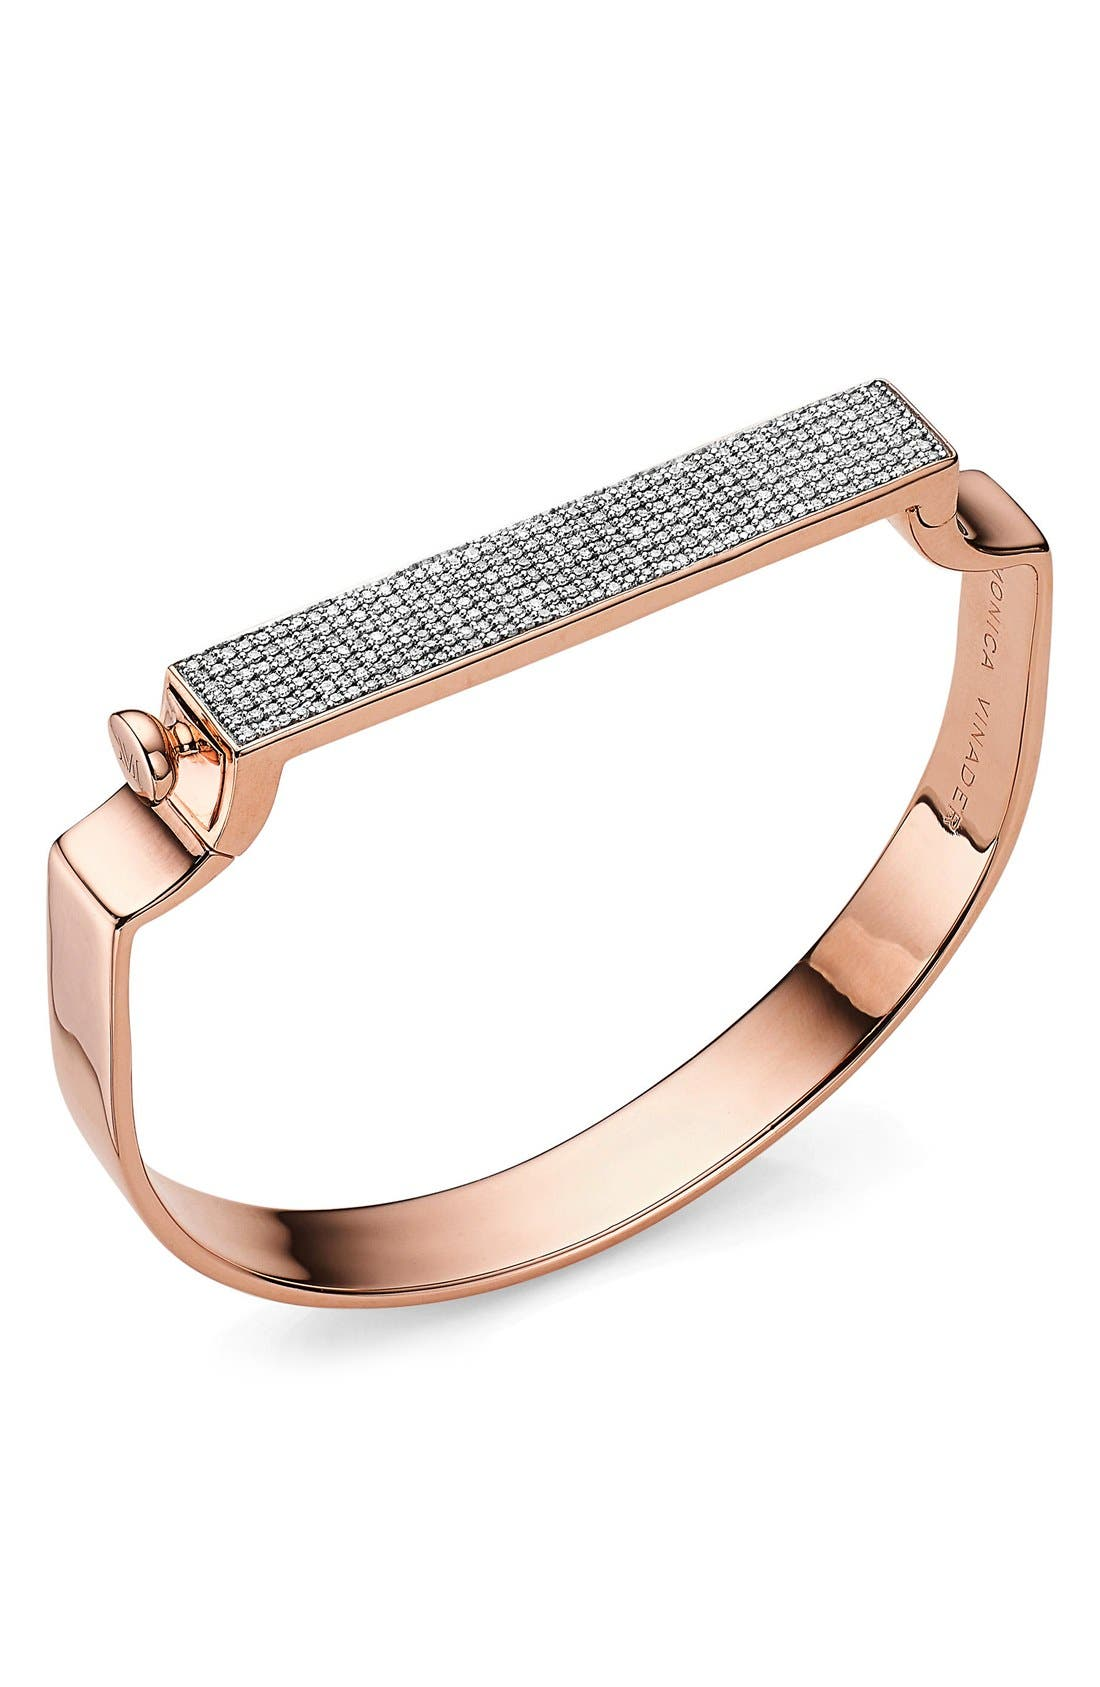 MONICA VINADER Signature Diamond Bangle